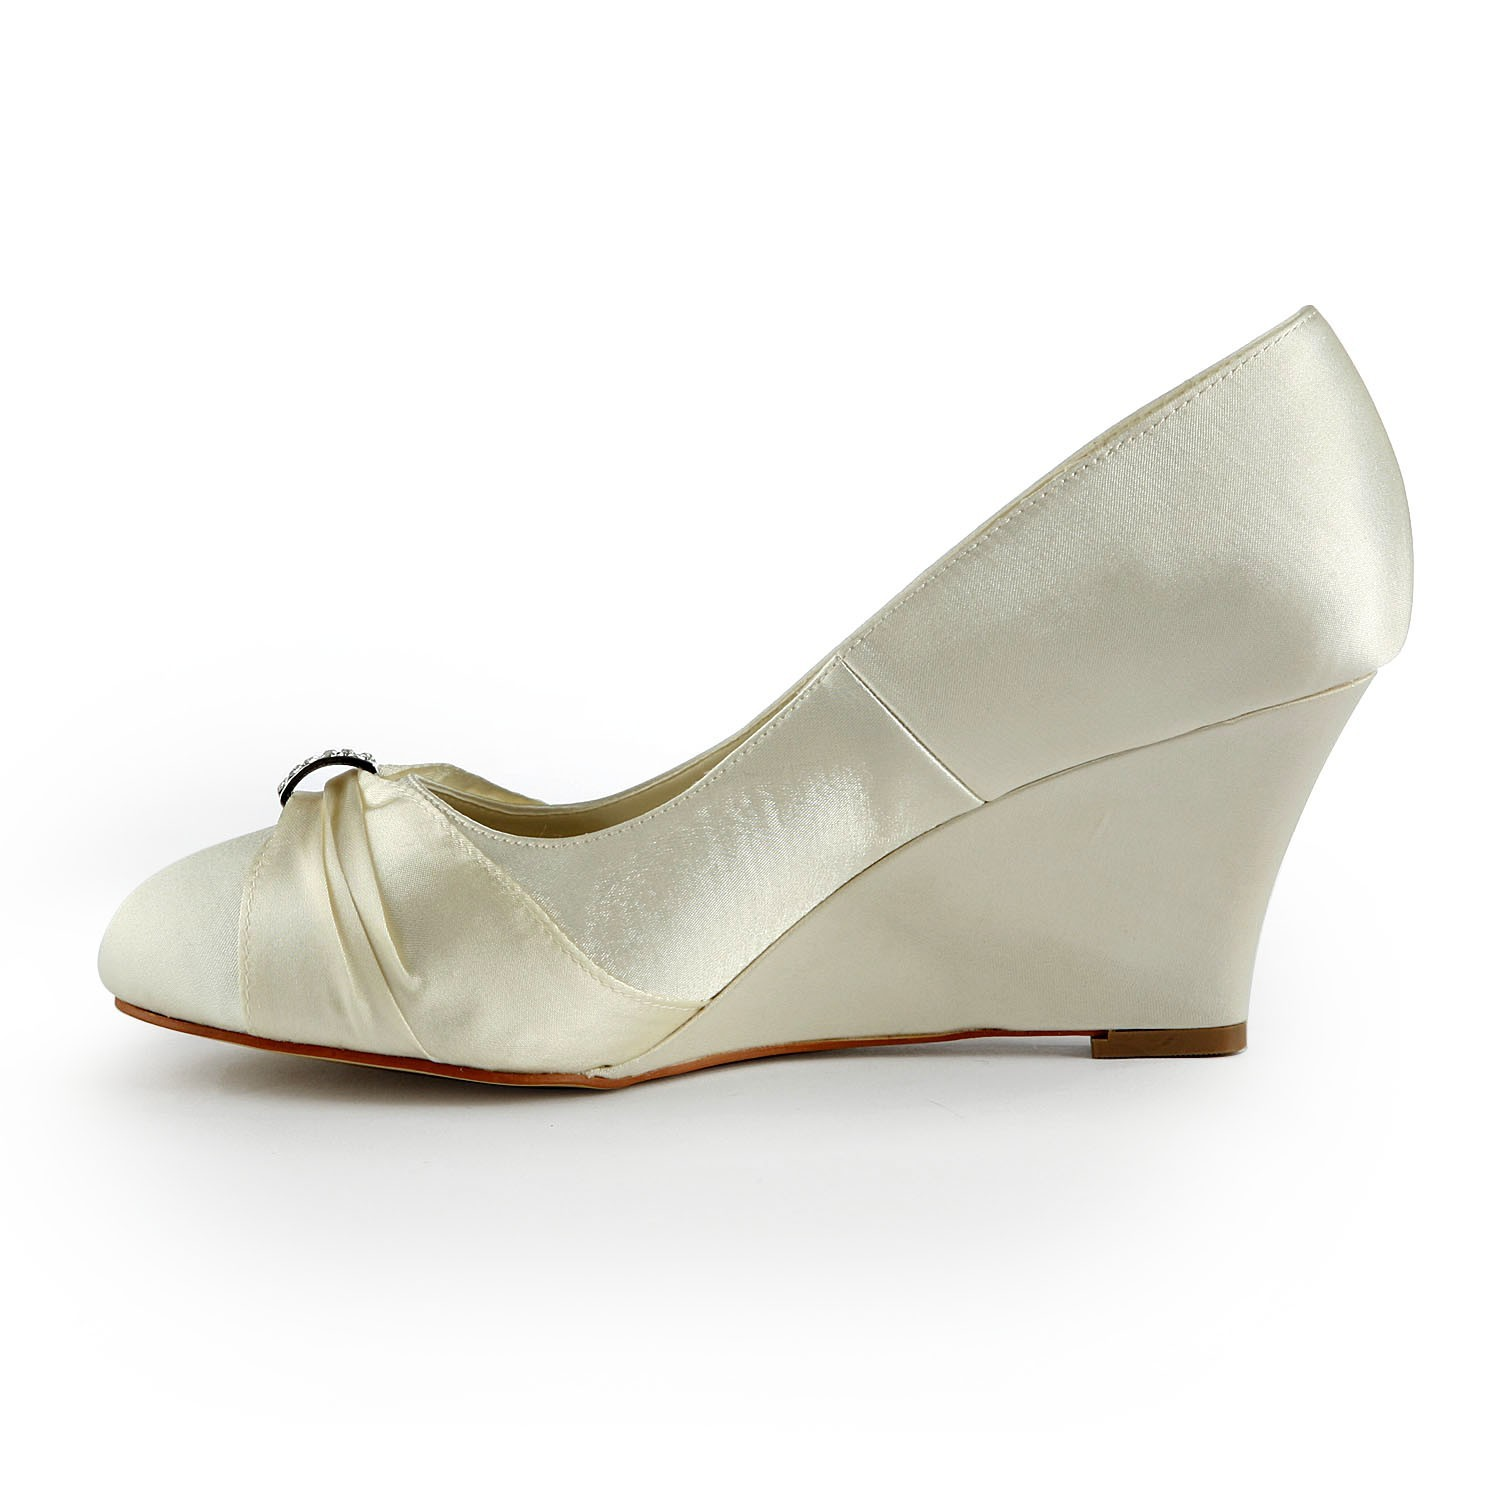 d7c60db25f0 Latest Women s Satin Wedge Heel Wedges With Rhinestone Ivory Wedding Shoes  - FabMiss